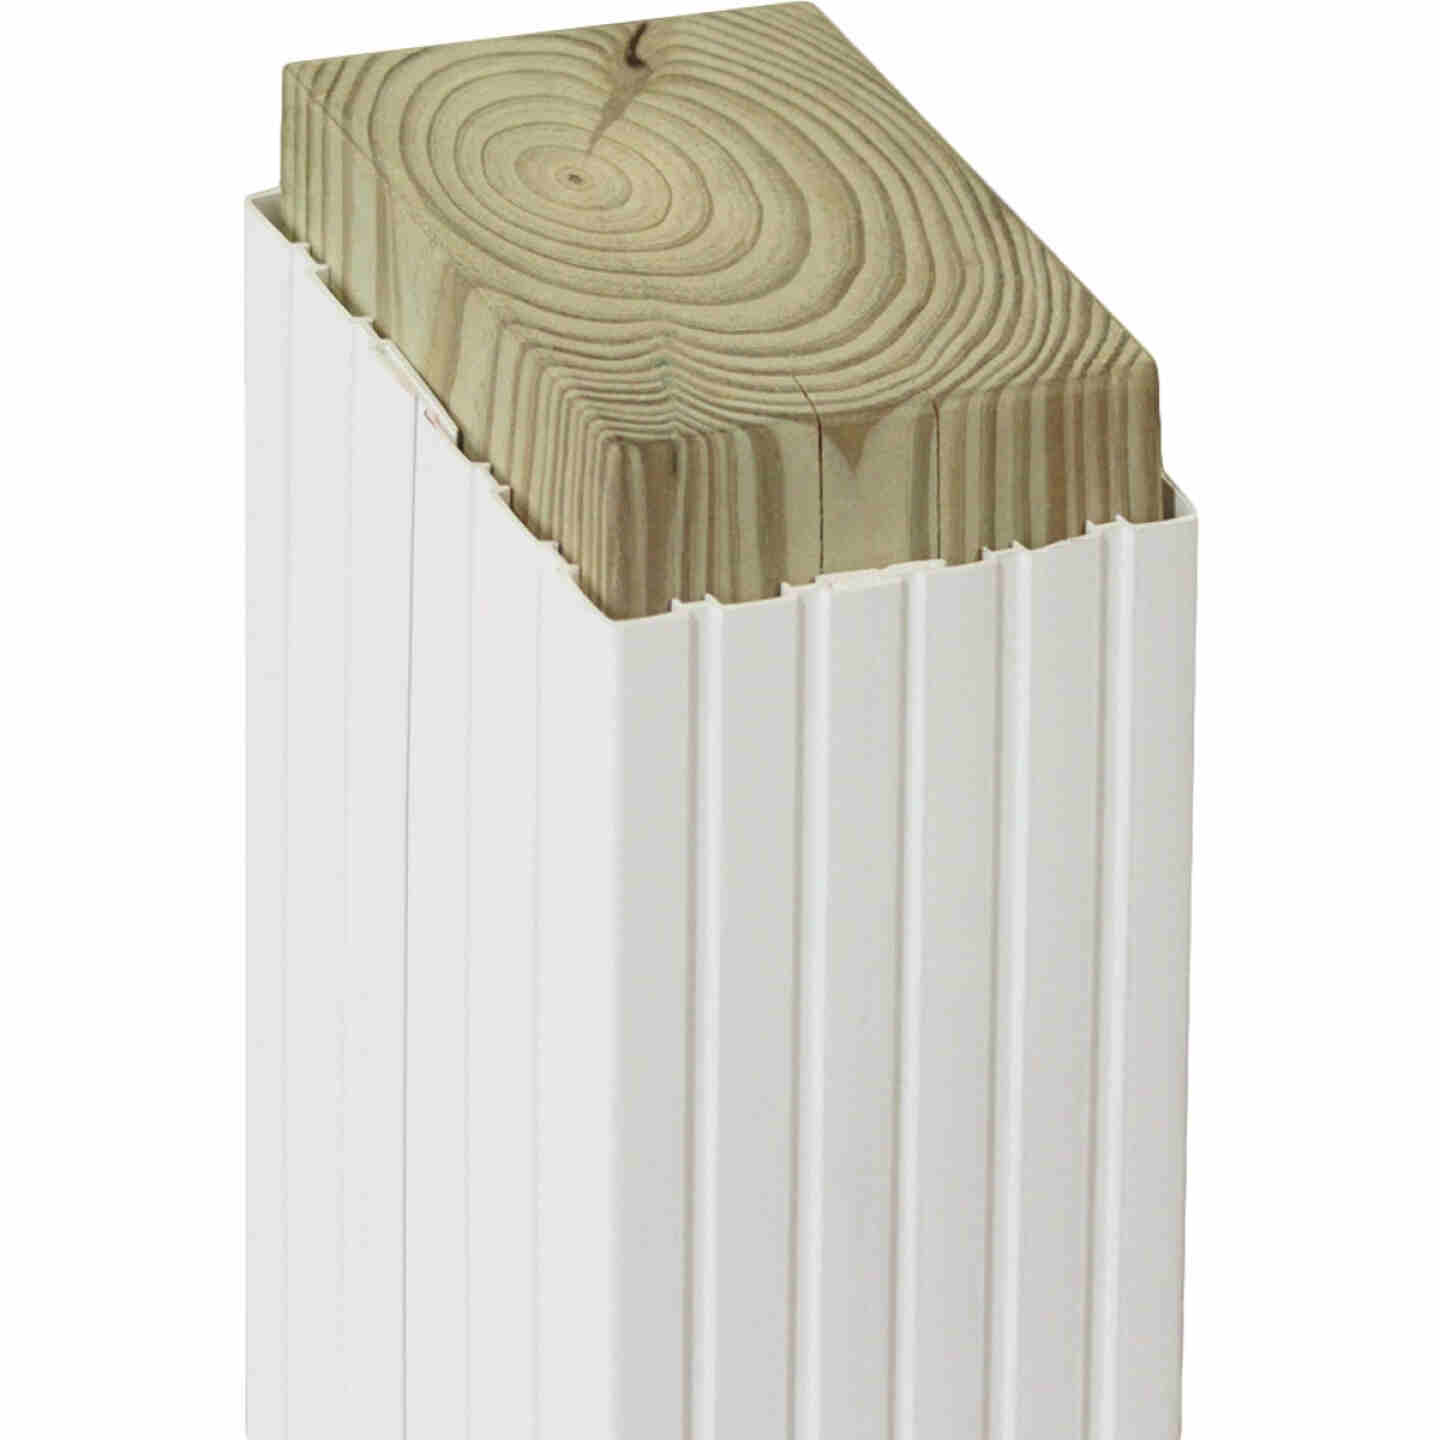 Beechdale 4 In. W. x 4 In. H. x 102 In. L. White PVC Fluted Post Wrap Image 1